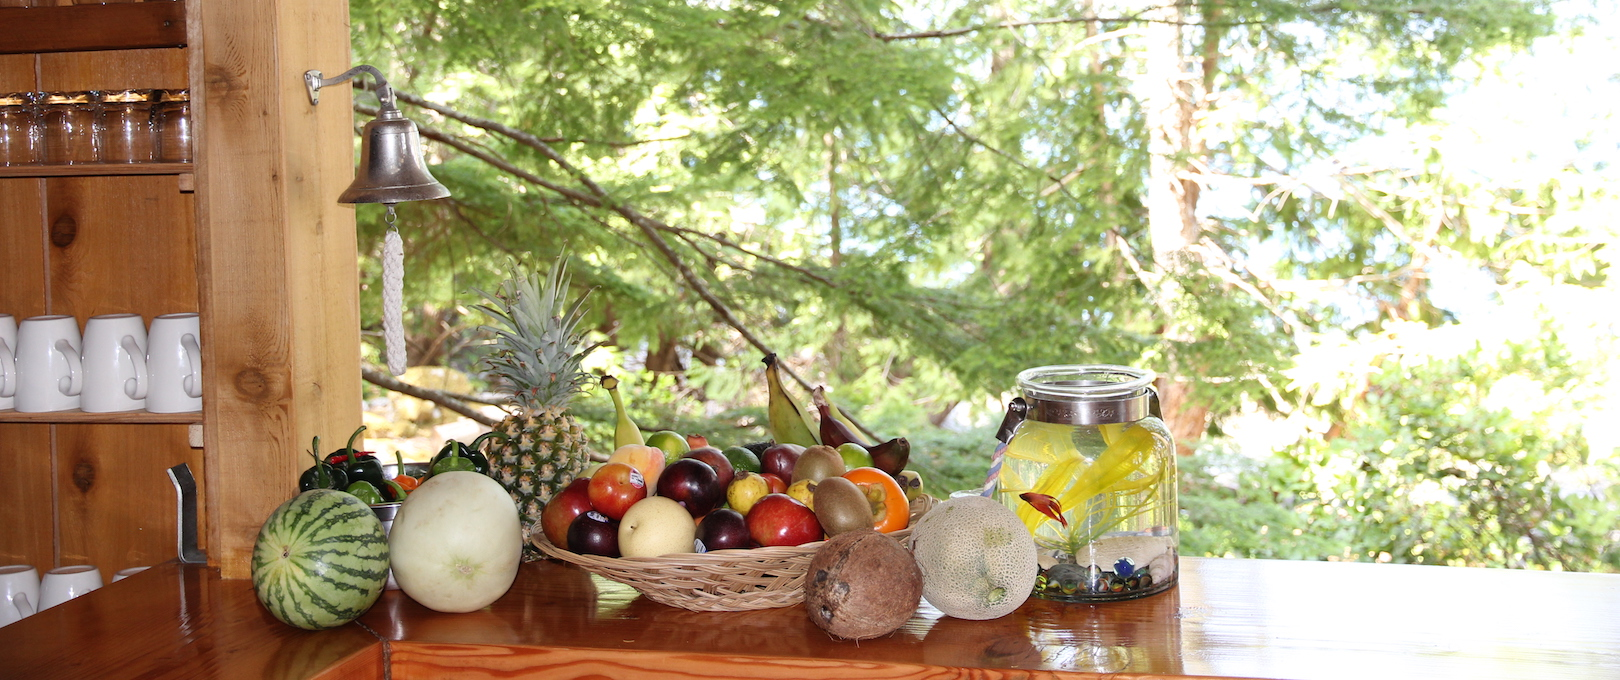 Healthy fresh fruit at the Cabana Cafe bar area at the eco resort